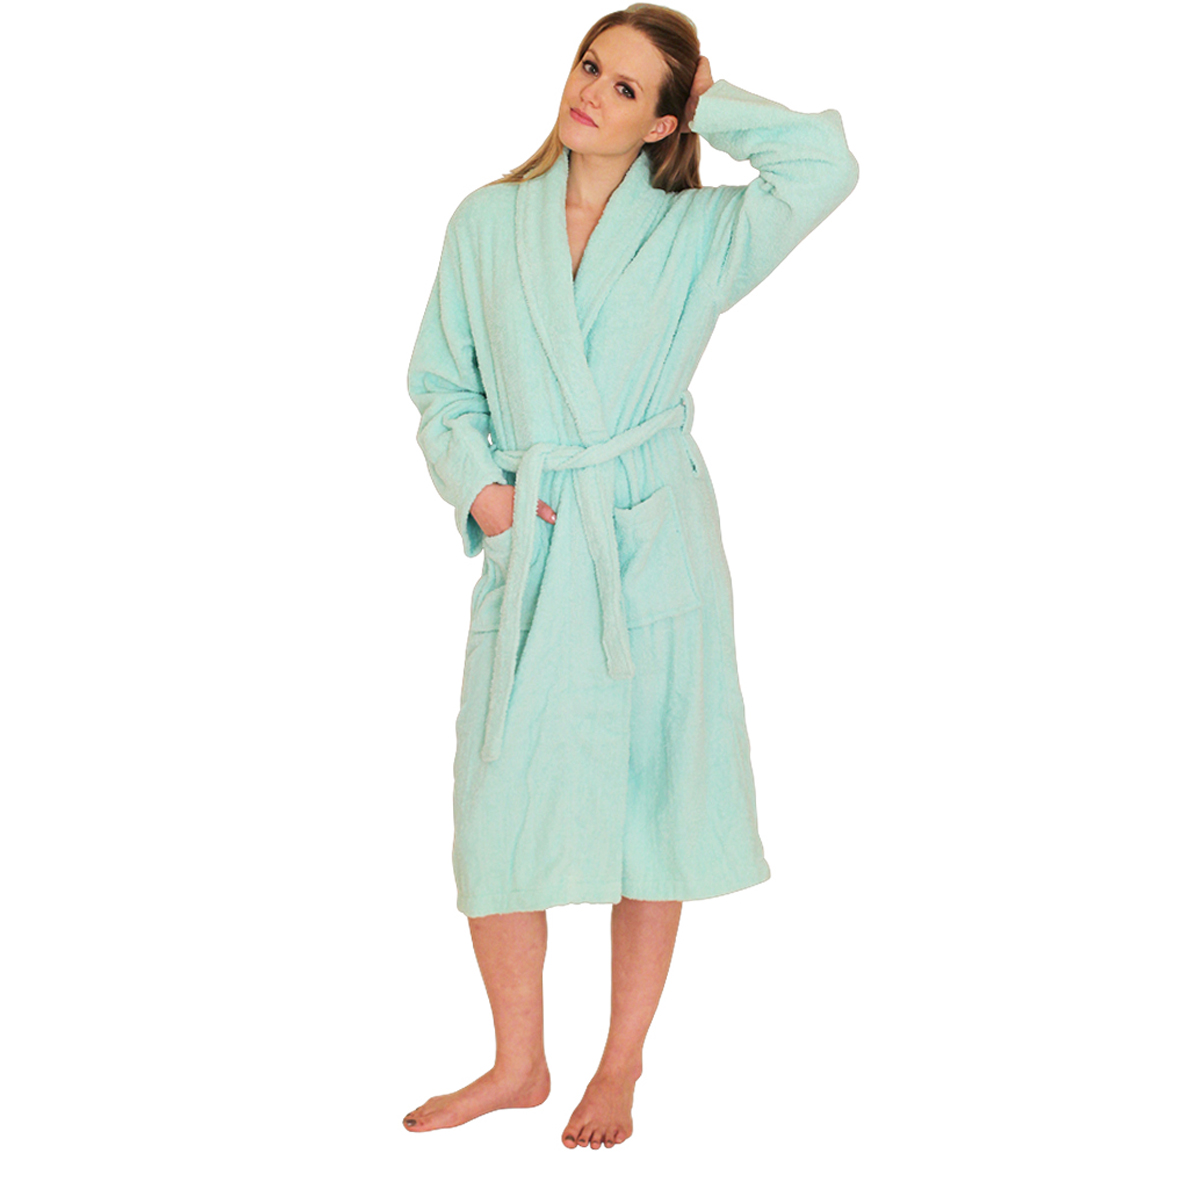 Bathrobe TerryCloth (Terry cloth) Bath Robe for women and men -  39.99  Colors  075d3412b